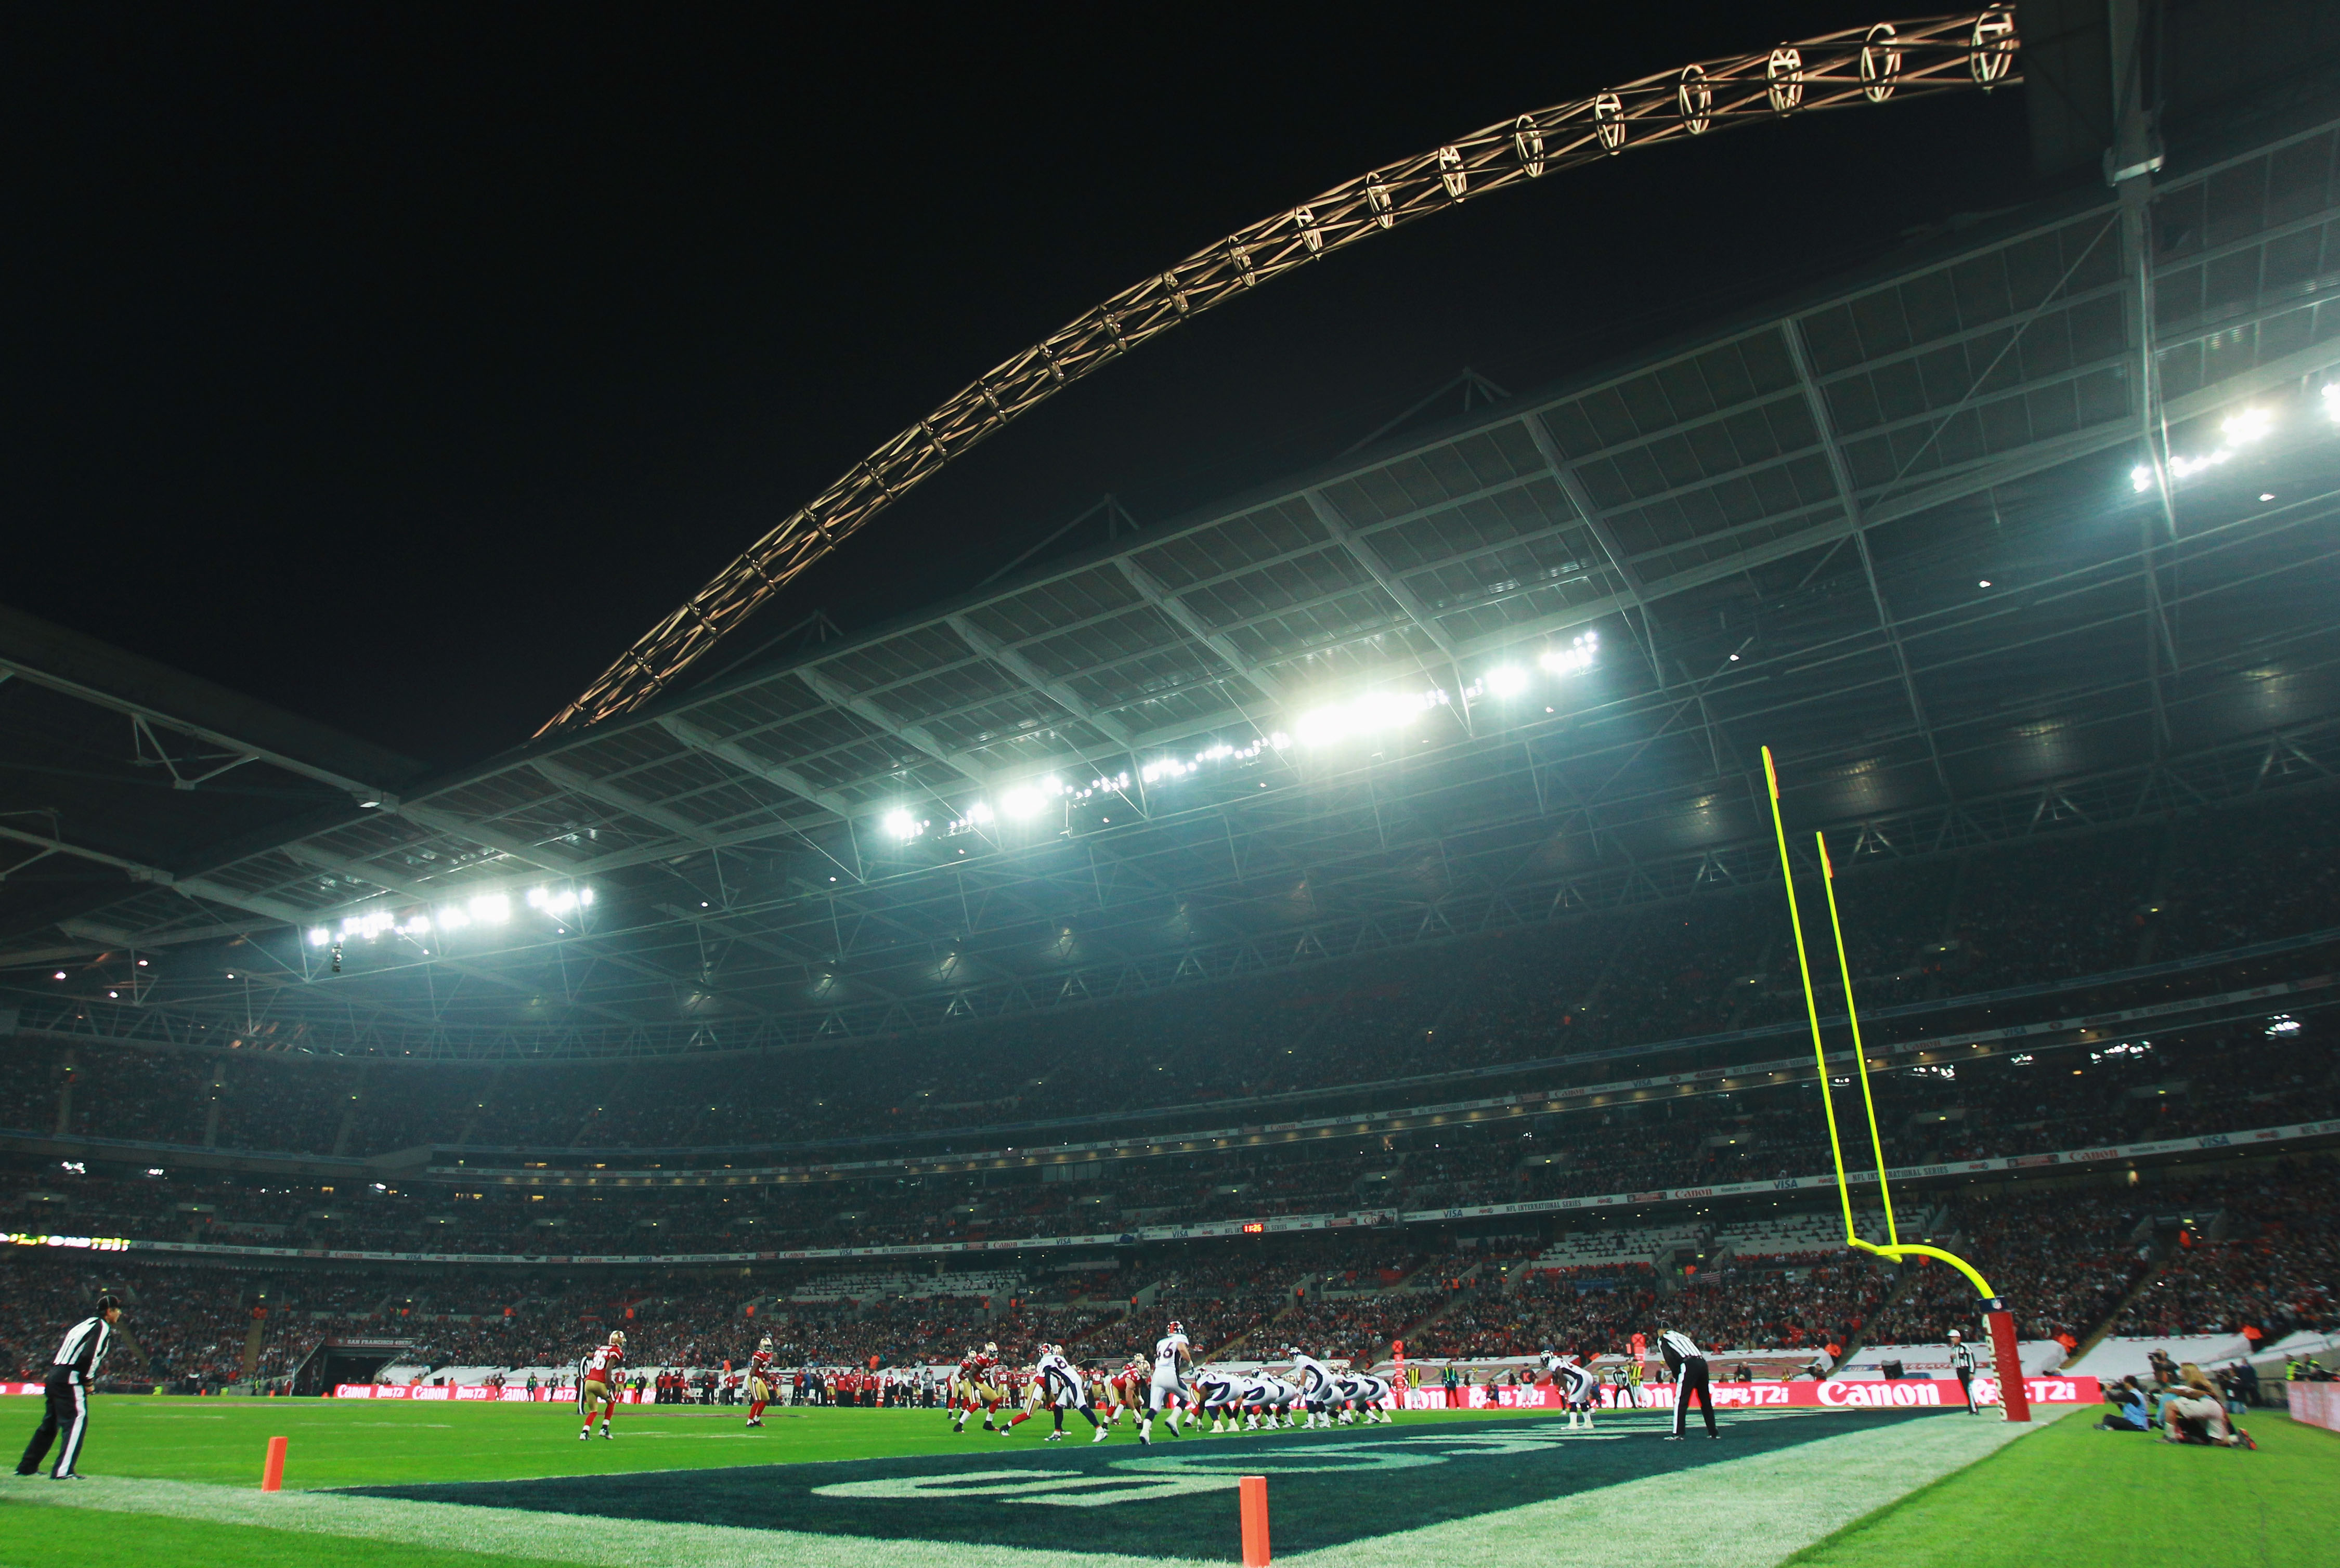 LONDON, ENGLAND - OCTOBER 31:  A general view during the NFL International Series match between Denver Broncos and San Francisco 49ers at Wembley Stadium on October 31, 2010 in London, England. This is the fourth occasion where a regular season NFL match